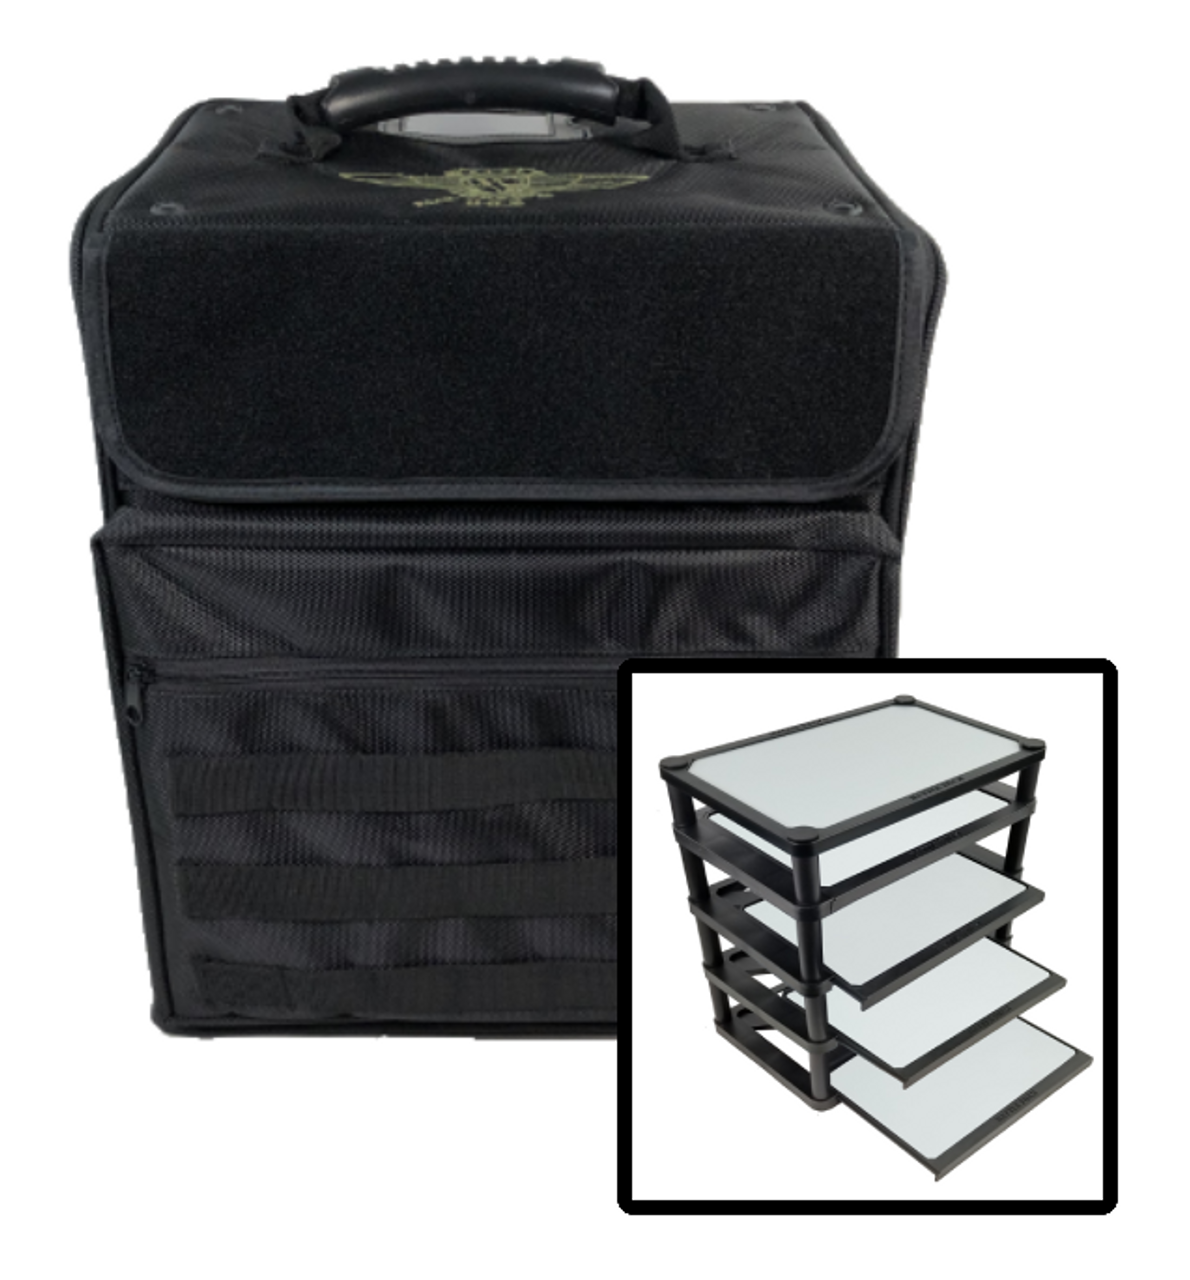 352 P A C K 352 Molle With Magna Rack Sliders Load Out Black Battle Foam The magna rack was designed for those gamers who like to store and transport their miniatures magnetized upright and free from. 352 p a c k 352 molle with magna rack sliders load out black